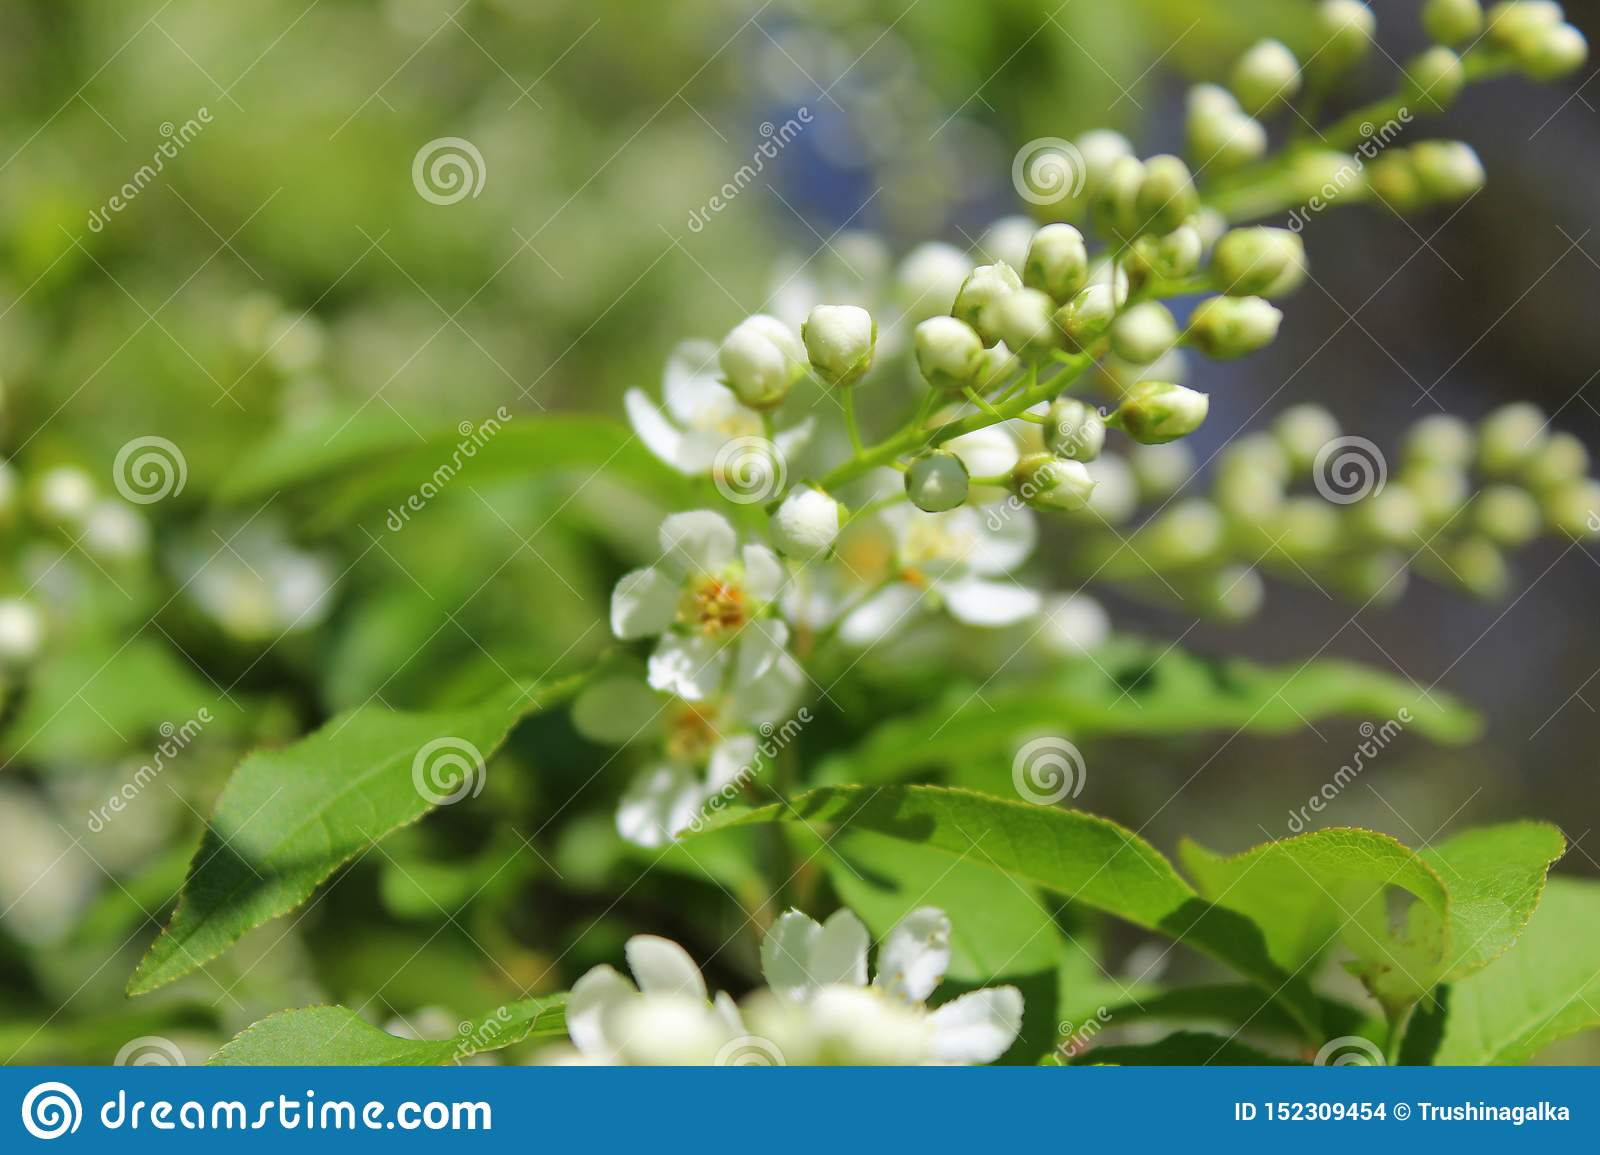 White flowers bird-cherry tree in the garden against green leaves